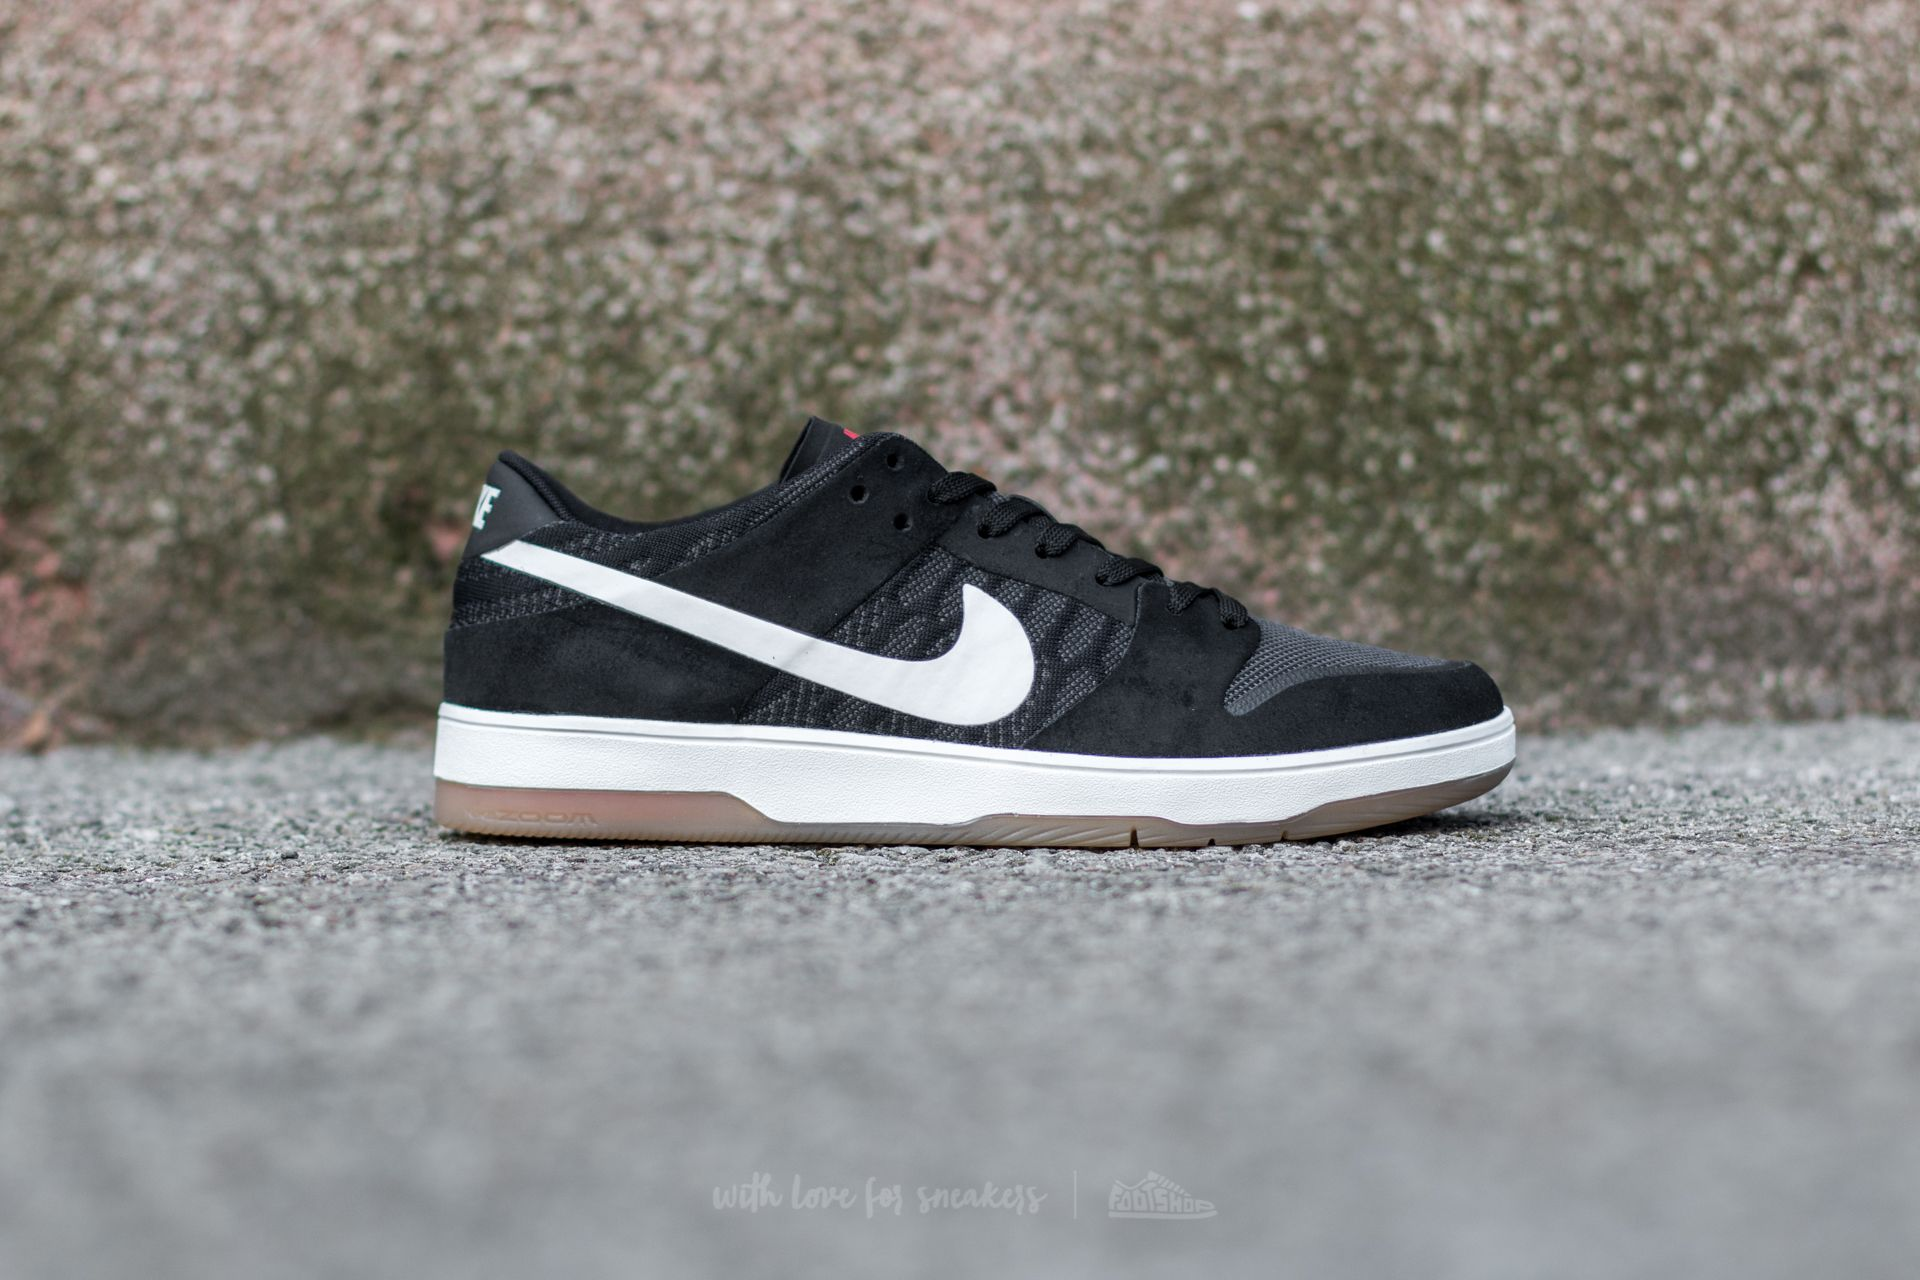 huge discount 00f4c 2a607 Nike SB Zoom Dunk Low Elite Black/ White-Gum Light Brown ...